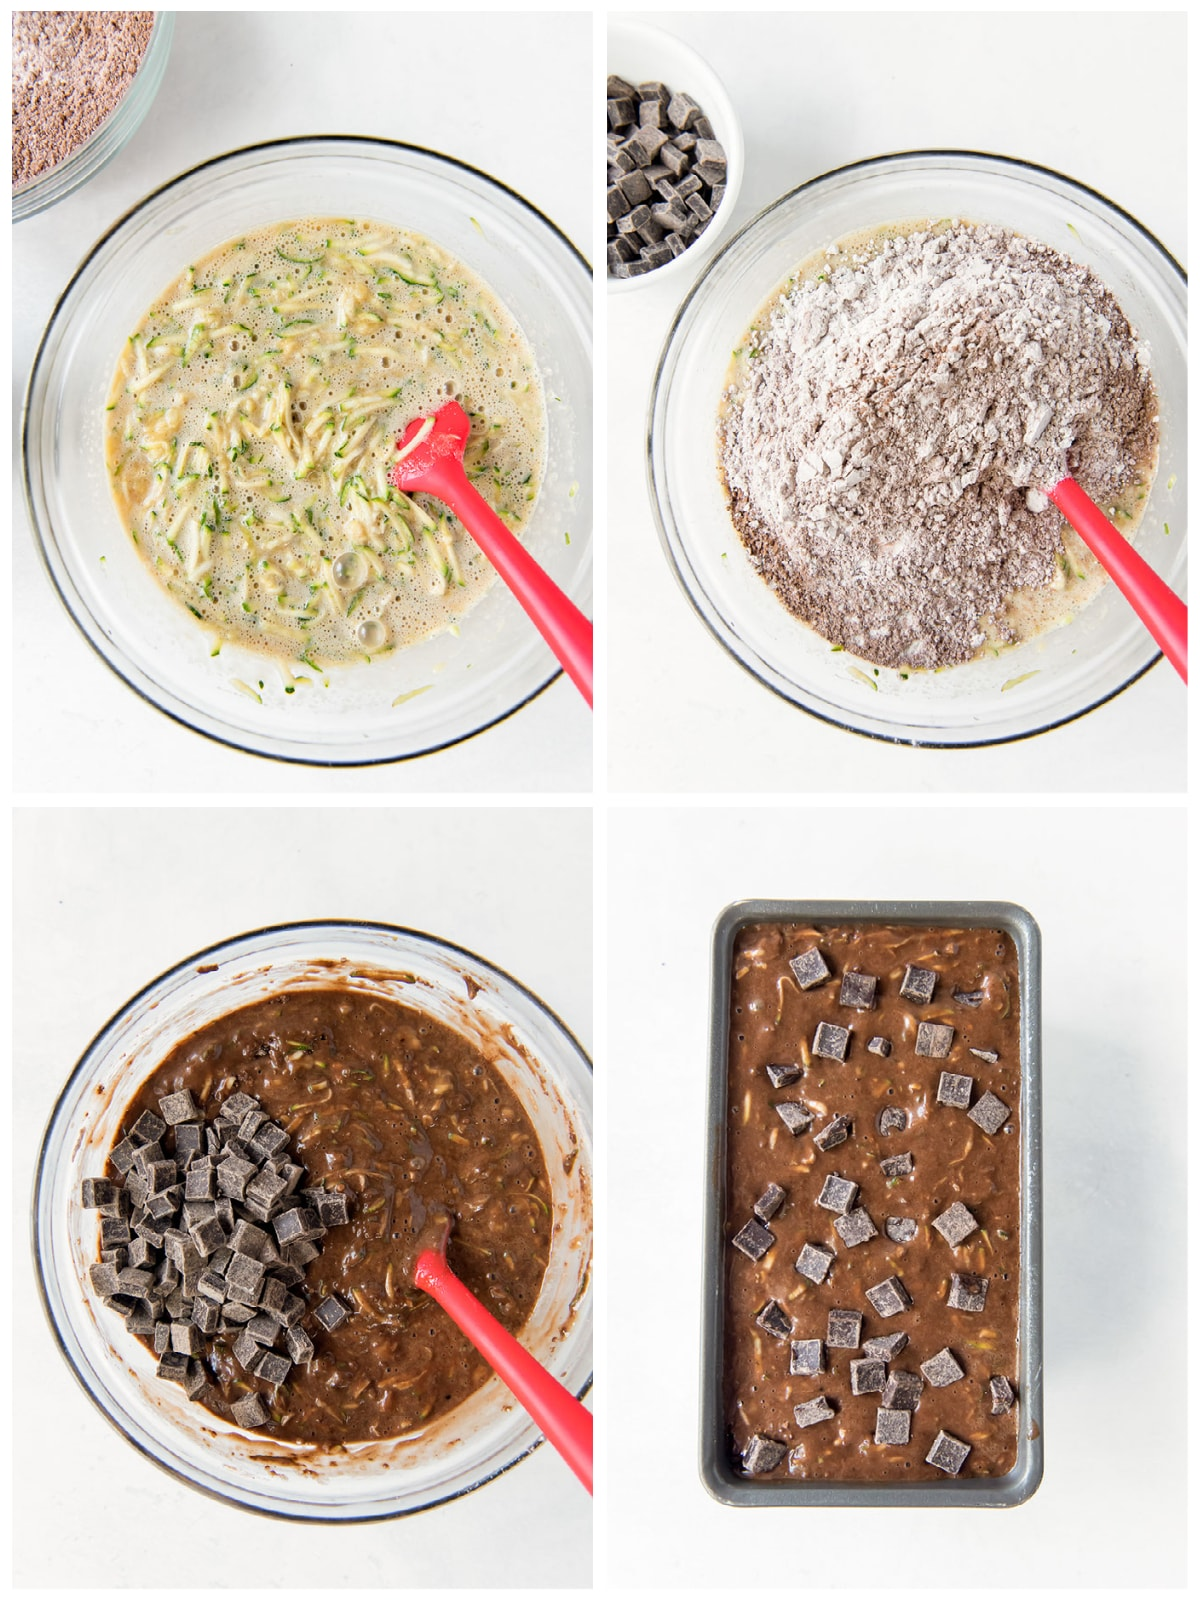 photo collage demonstrating how to make chocolate zucchini banana bread in a glass mixing bowl and loaf pan